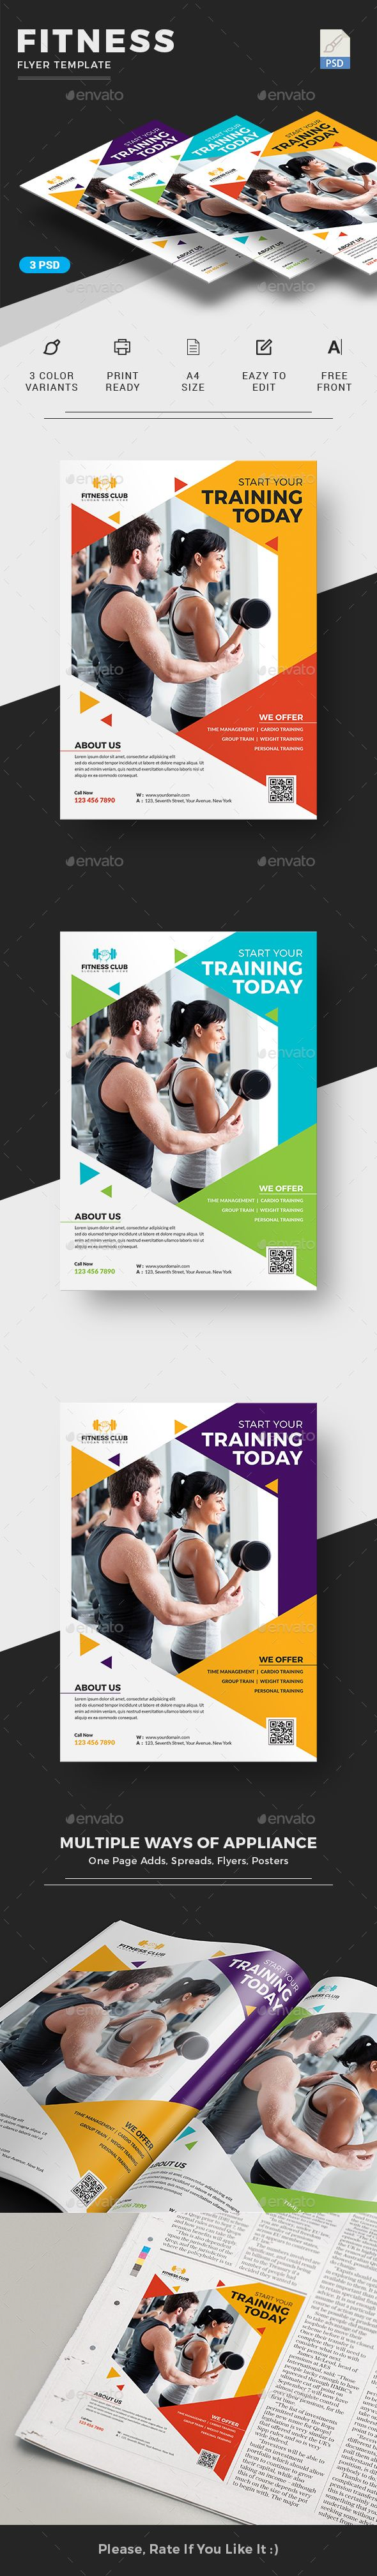 Fitness Flyer - Sports Events | Fitness / Gym Flyer Template Design |  Gym Flyer Template for advertising purpose like newspaper ad or magazine ad | Download  http://graphicriver.net/item/fitness-flyer/16569383?ref=themedevisers